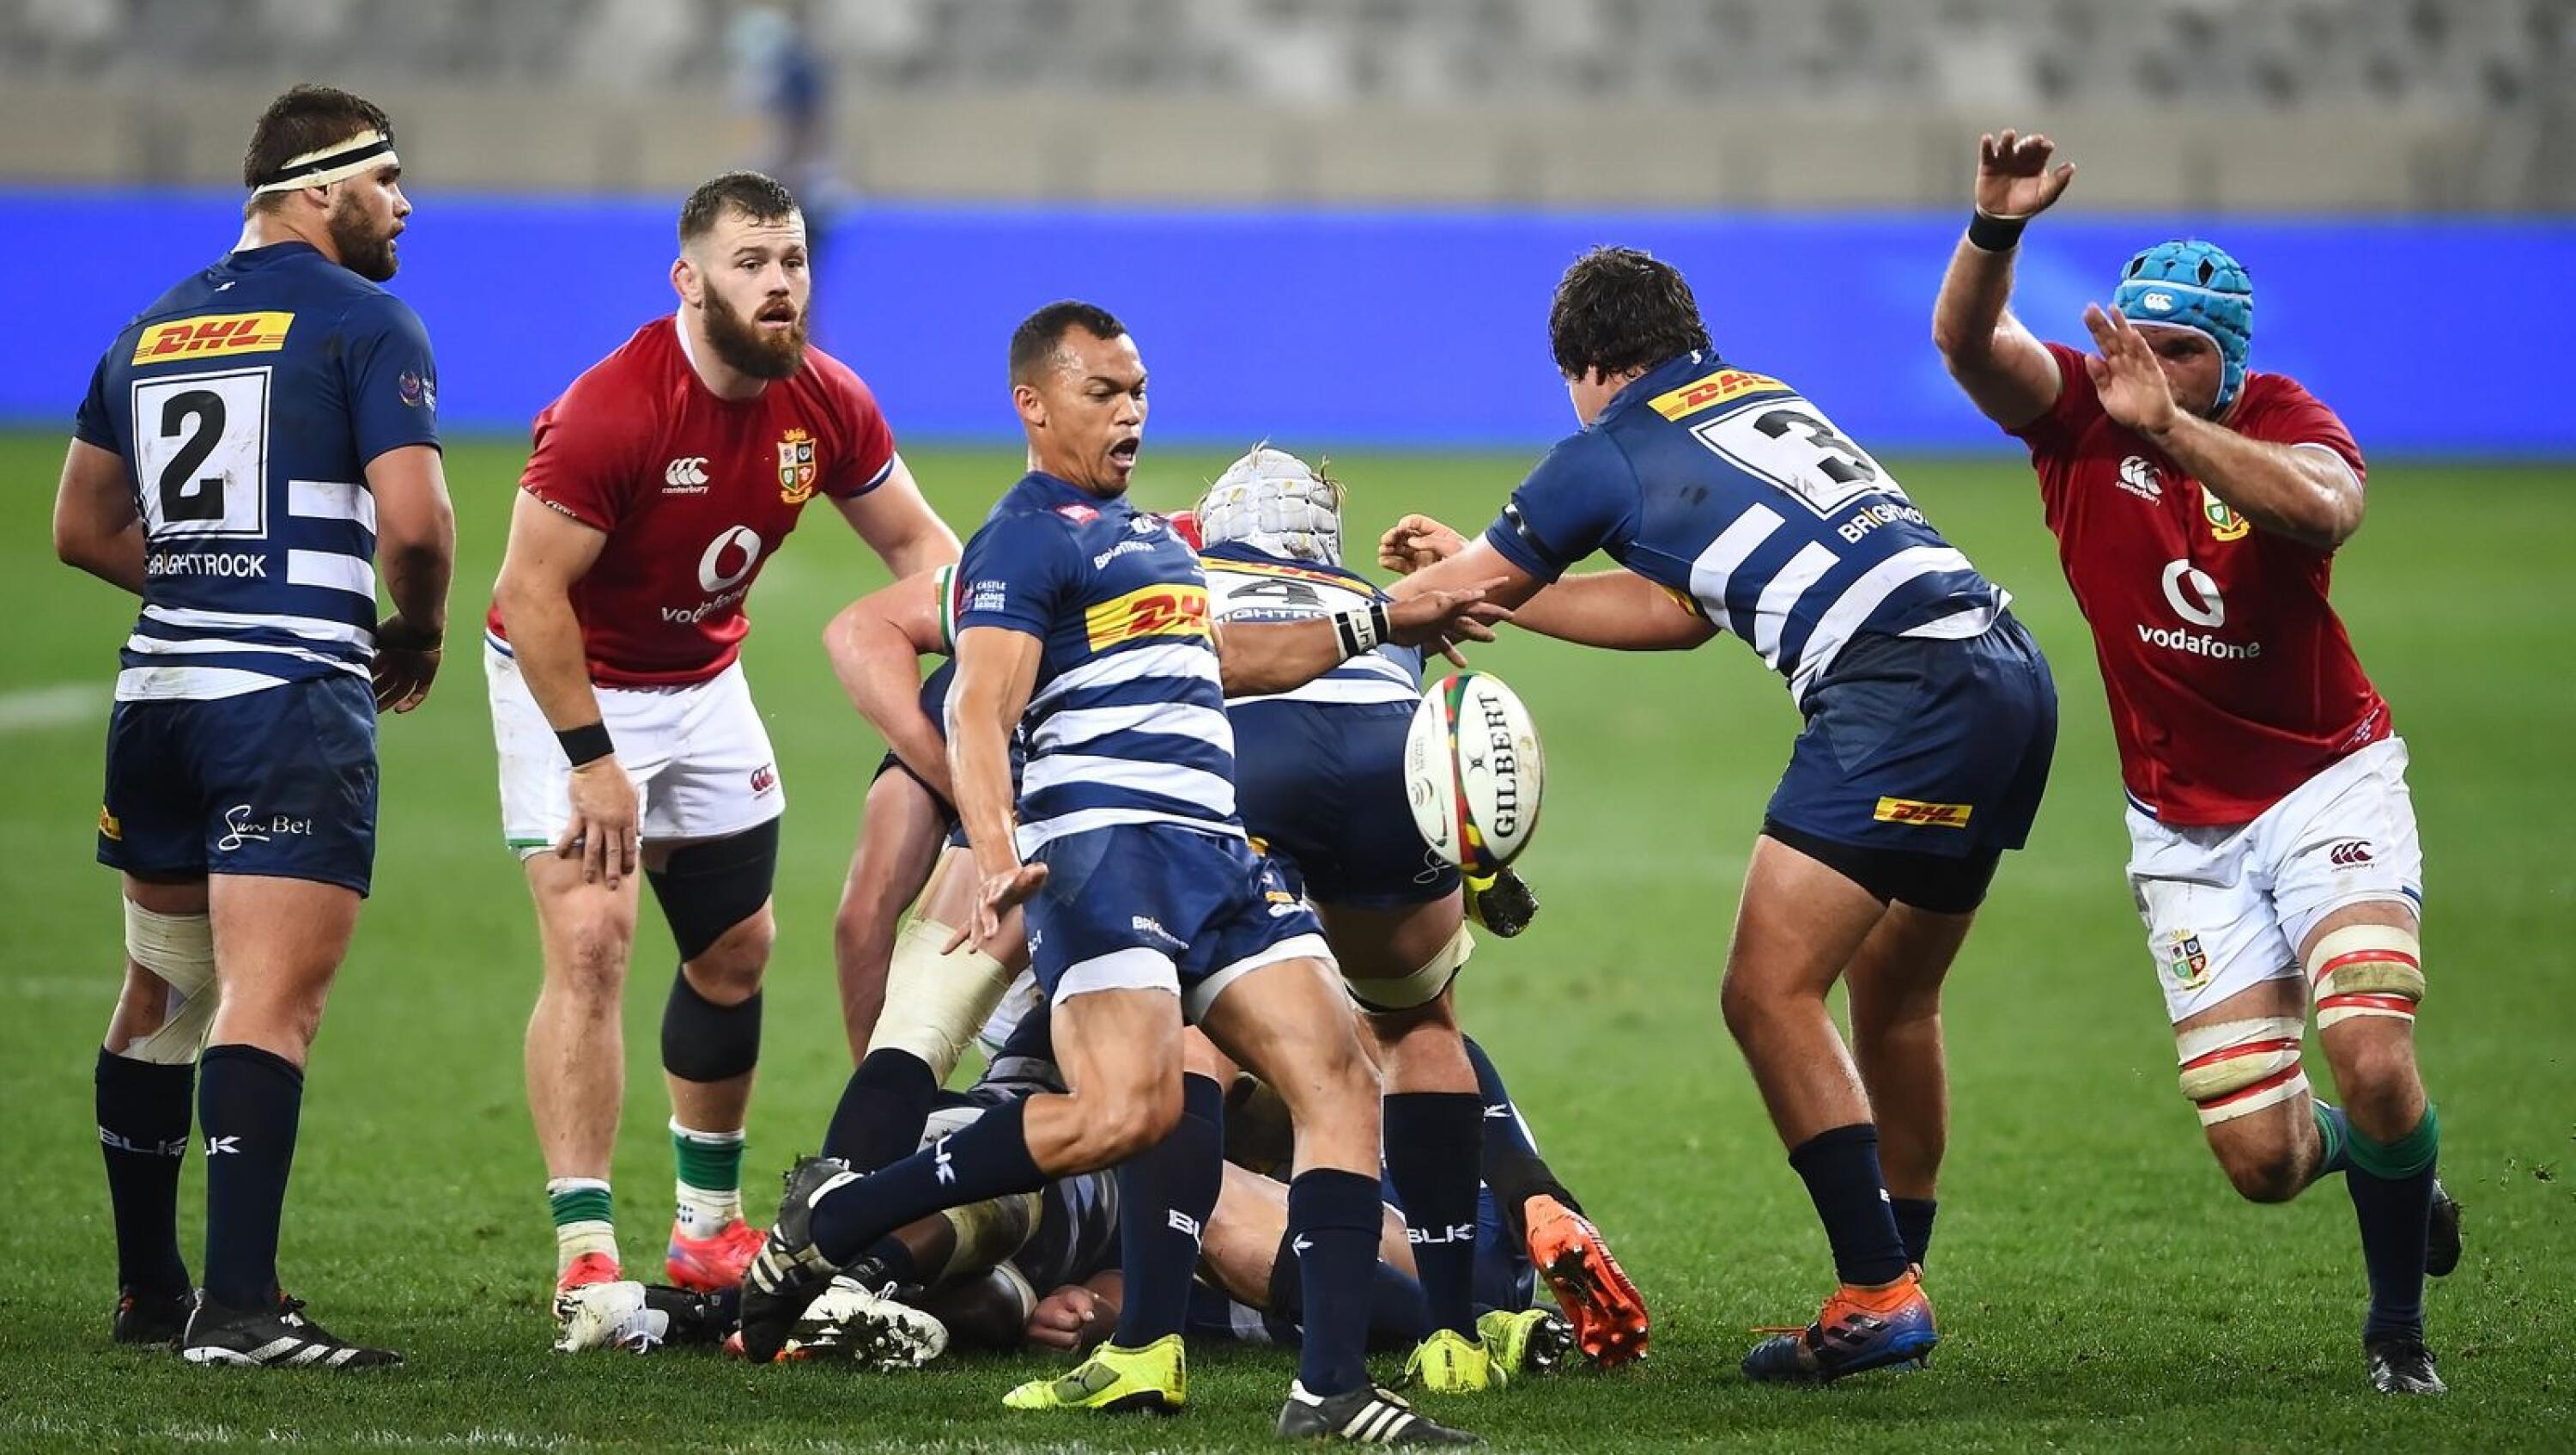 Godlen Masimla of the Stormers kicks the ball from a scrum during their game against the British & Irish Lions at the Cape Town Stadium on Saturday